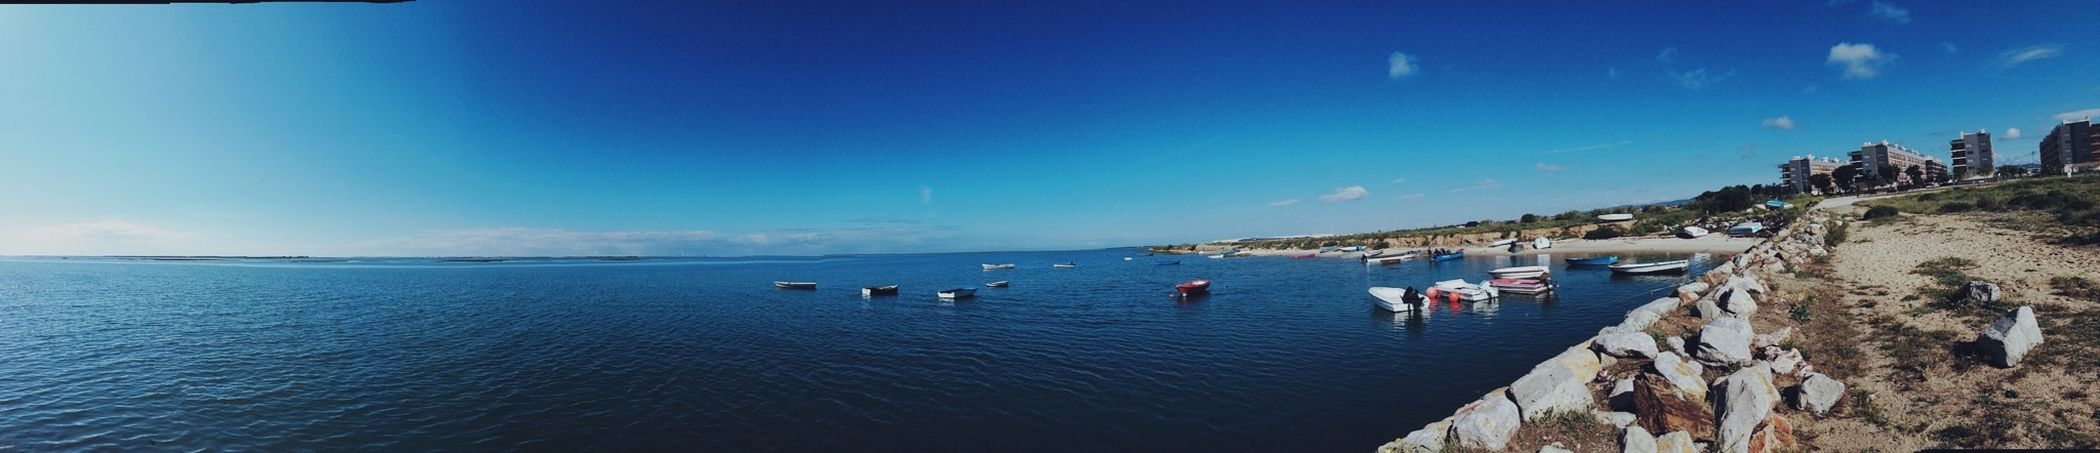 Another angle from Olhao